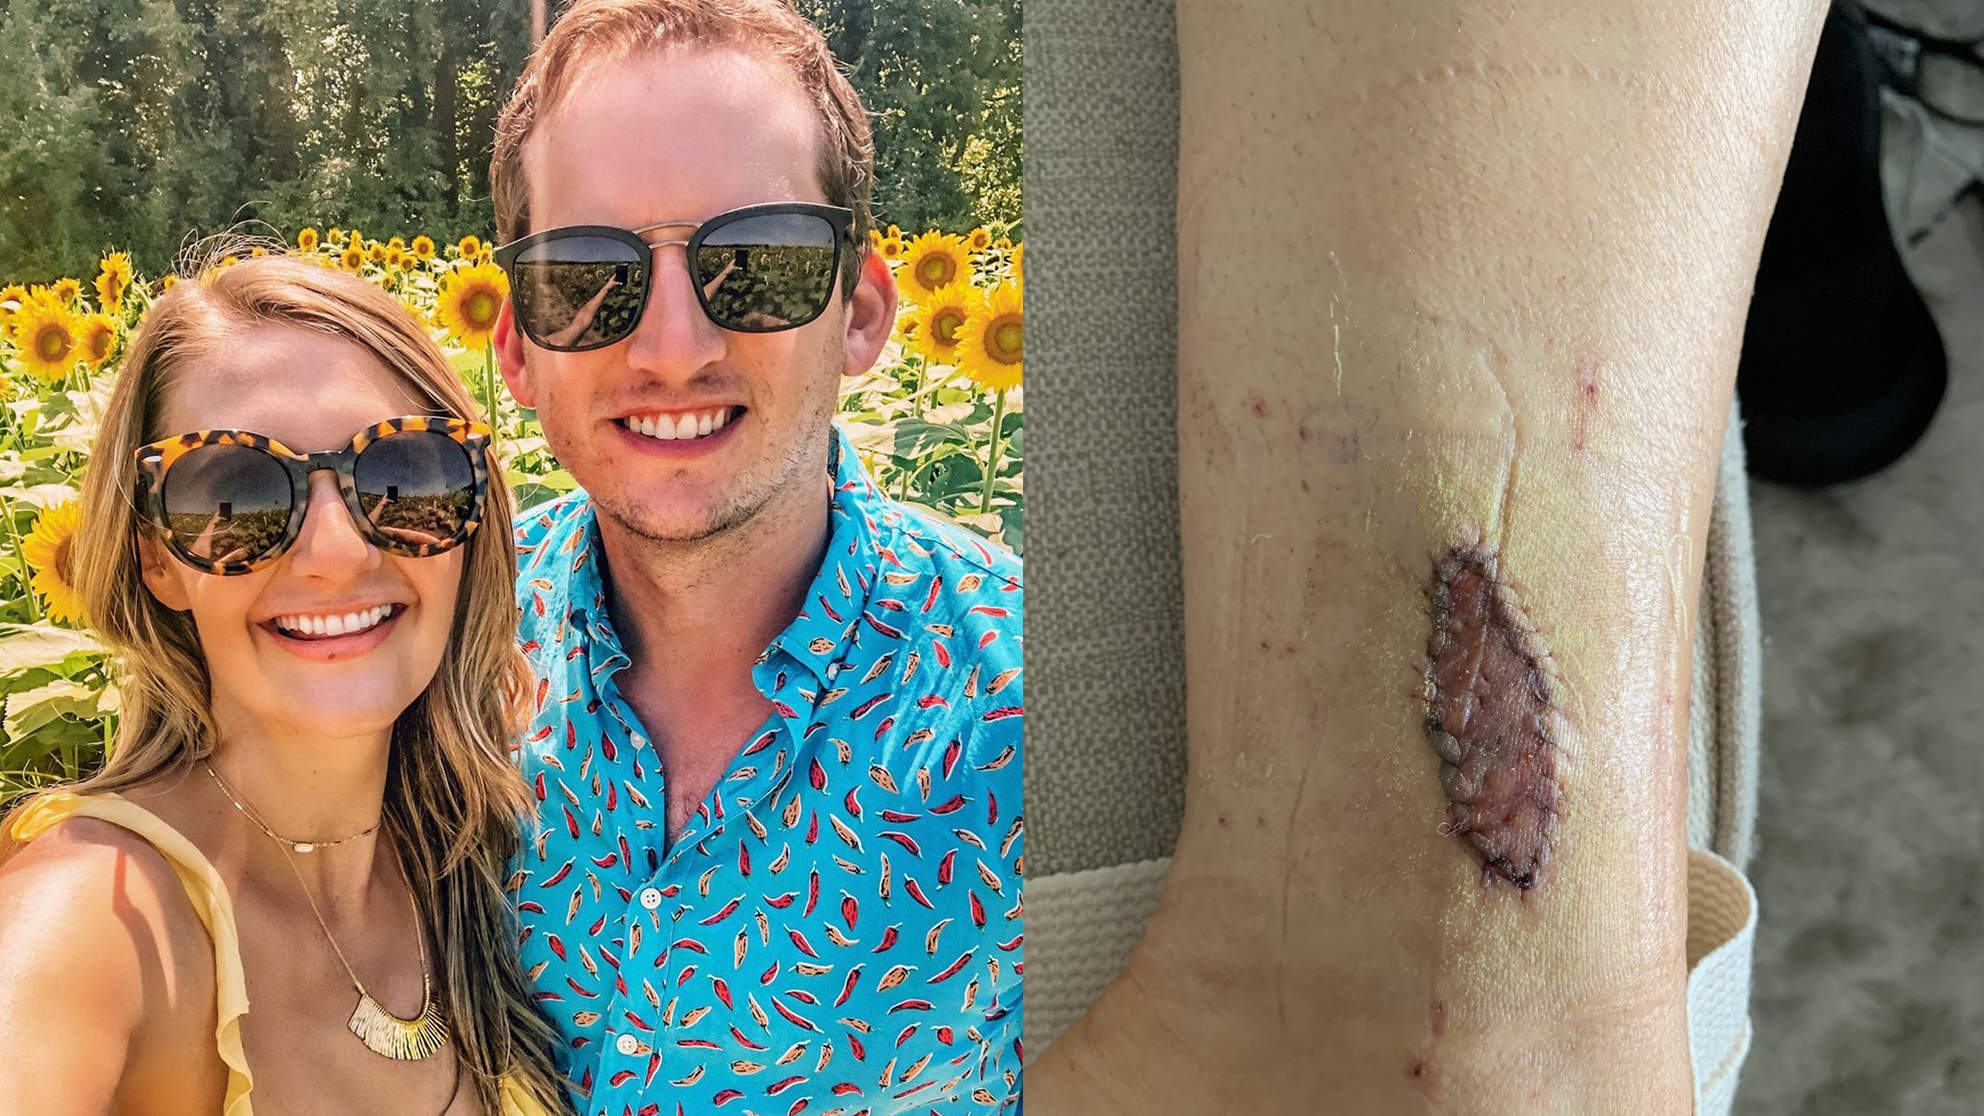 This Influencer's Birthmark Turned Out to Be Melanoma: 'I Could Feel It Growing'